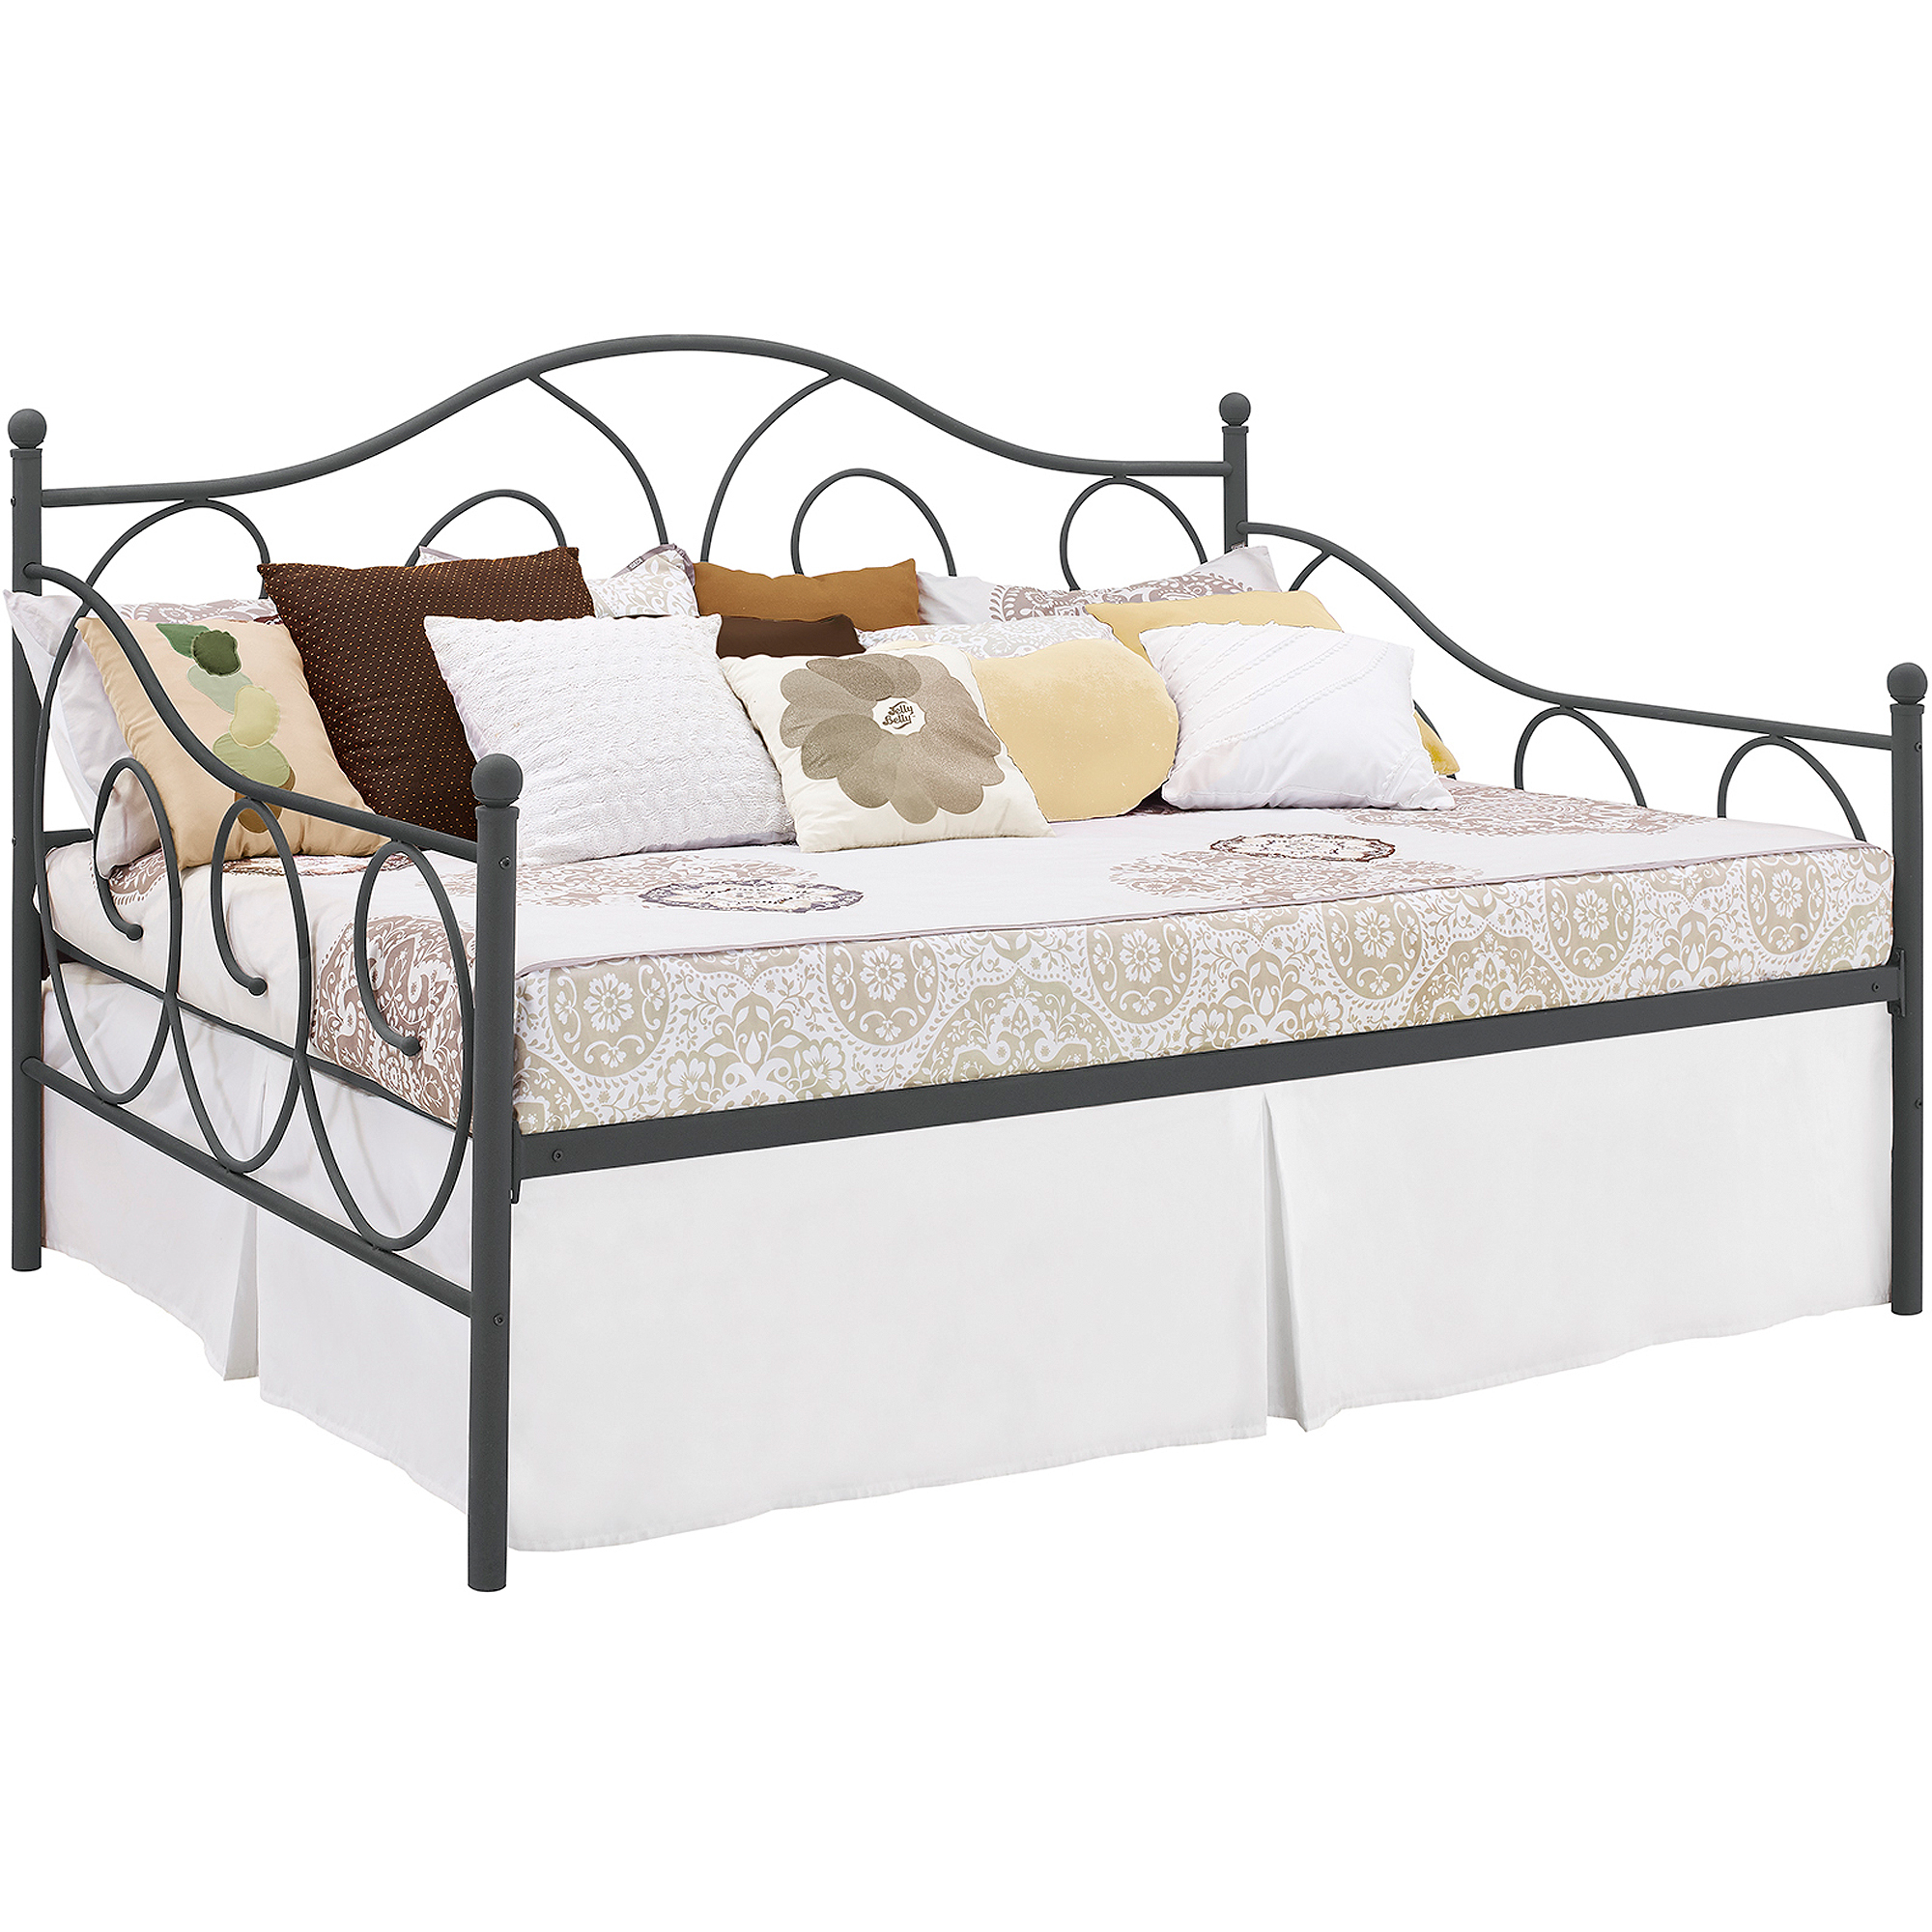 DHP Victoria Full Size Metal Daybed Pewter Bed